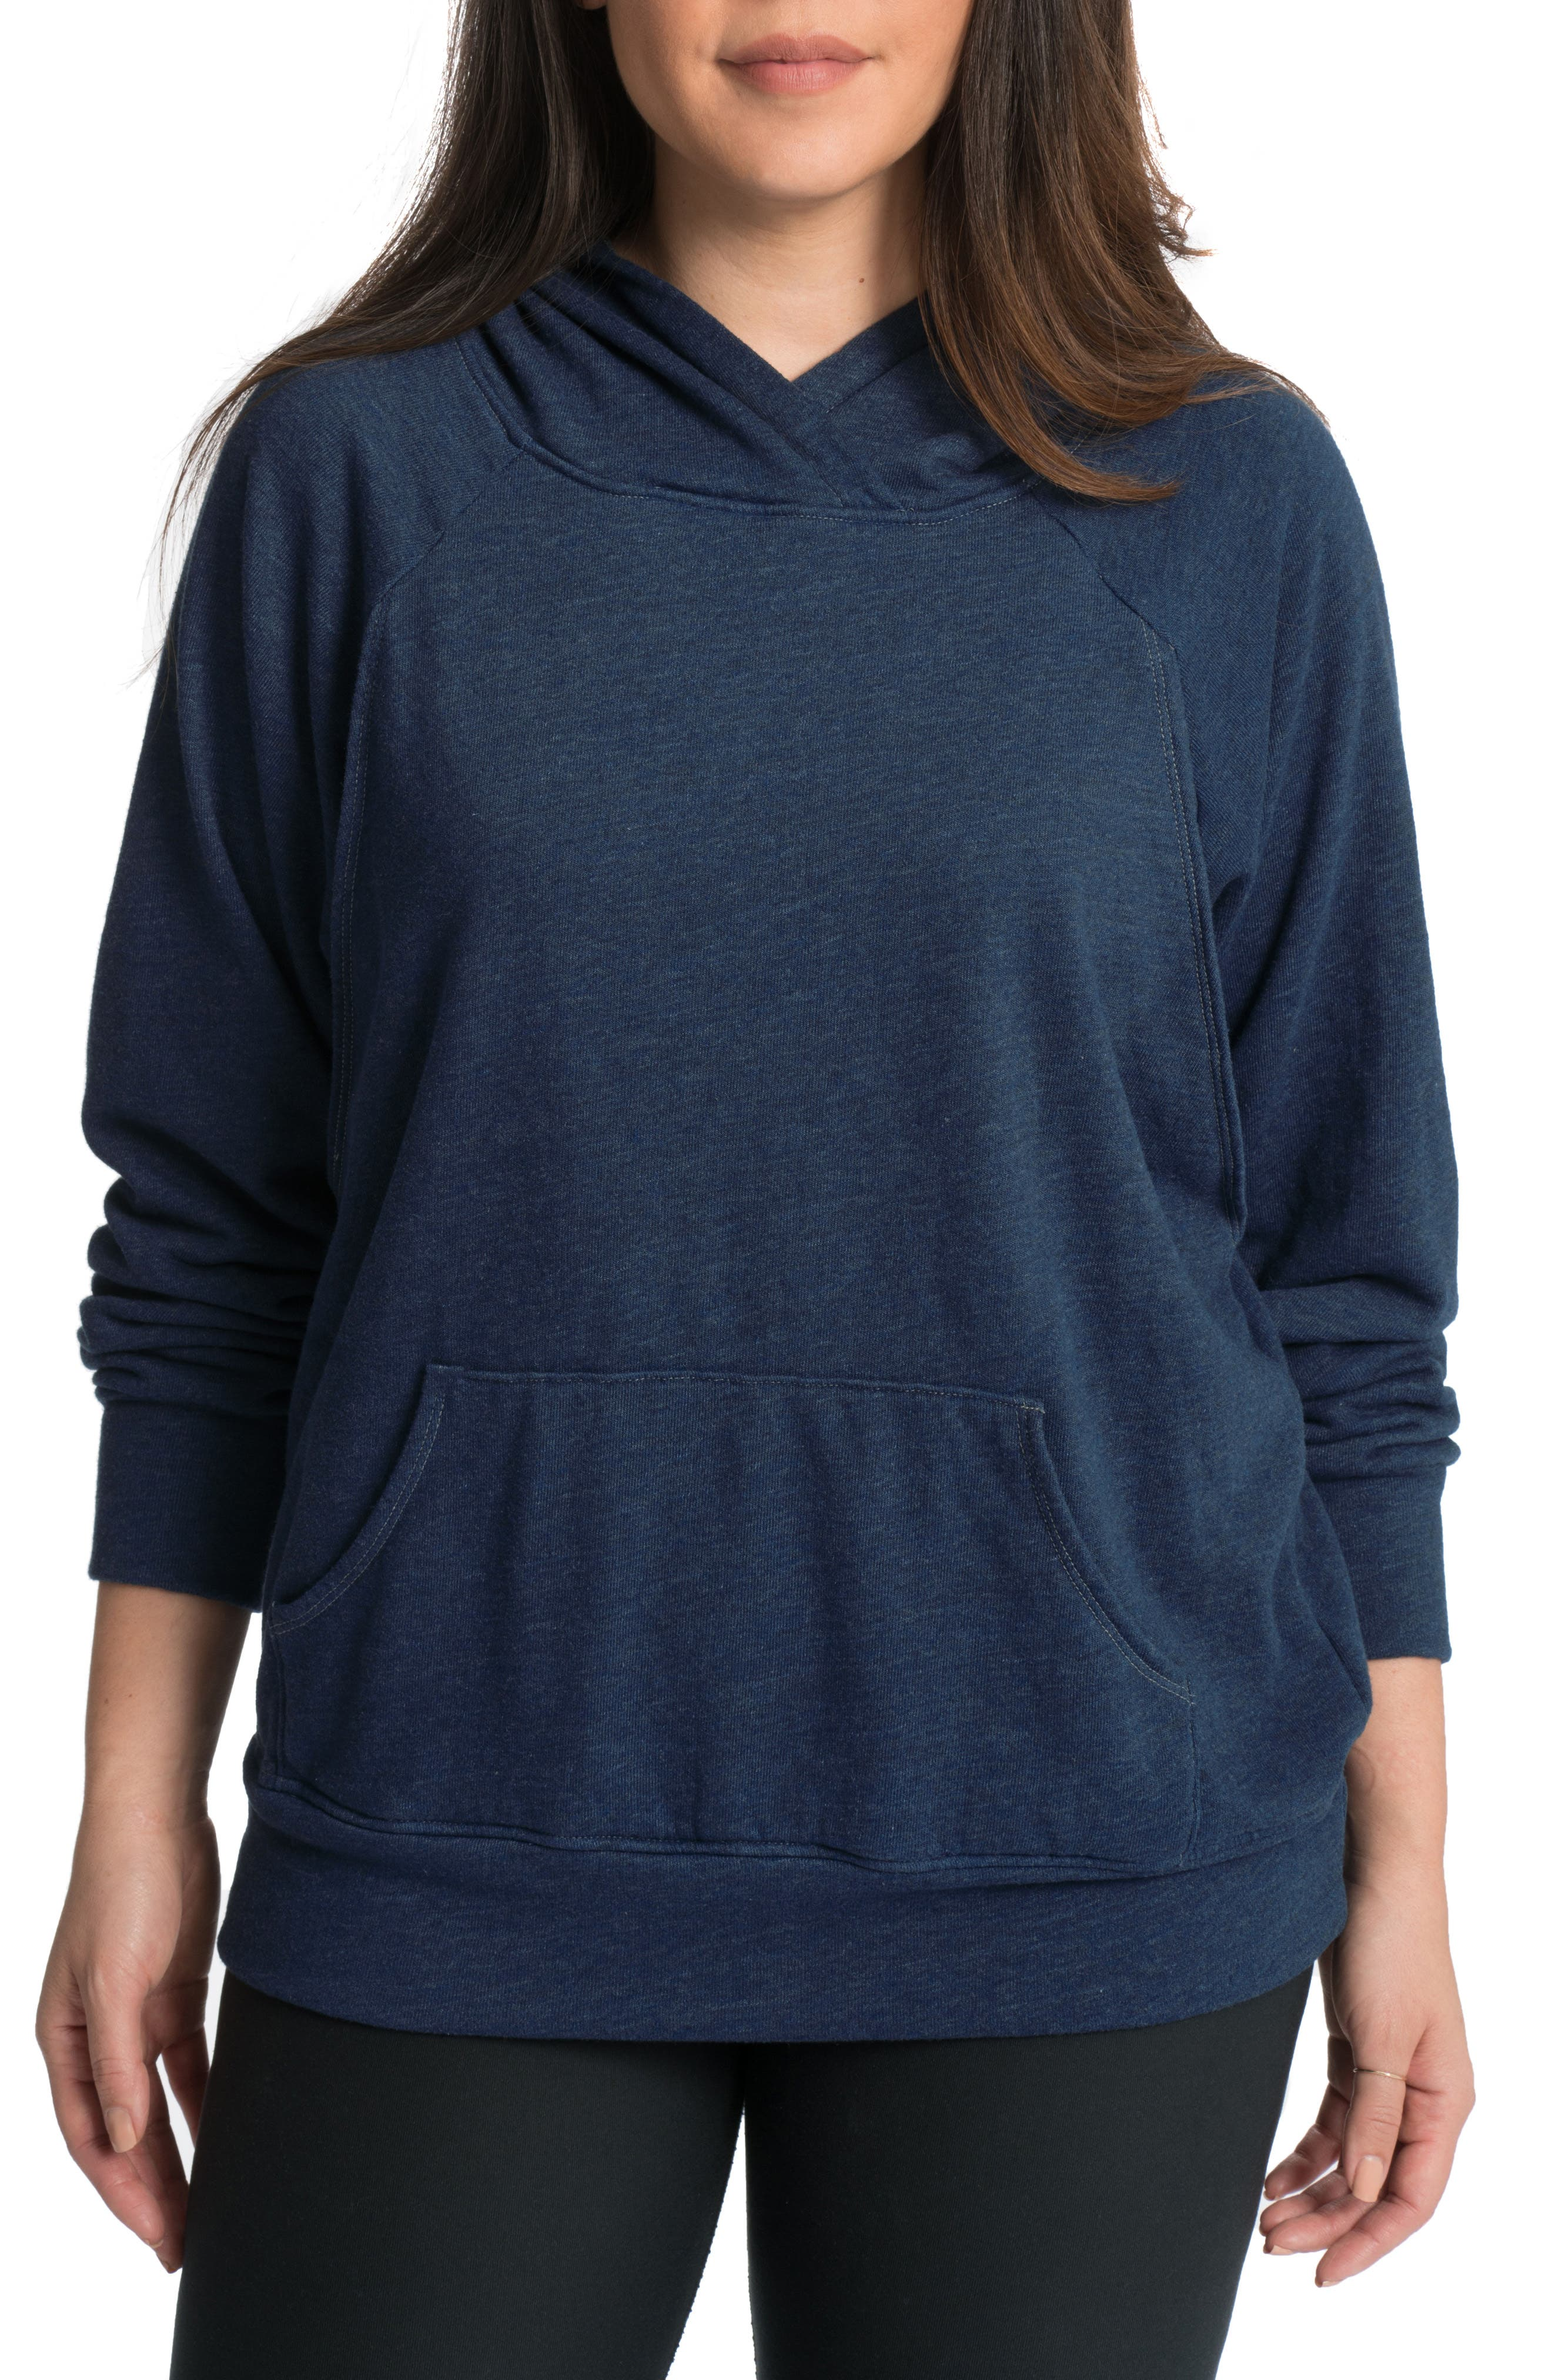 Relaxed Daily Maternity Nursing Hoodie,                             Main thumbnail 1, color,                             NAVY